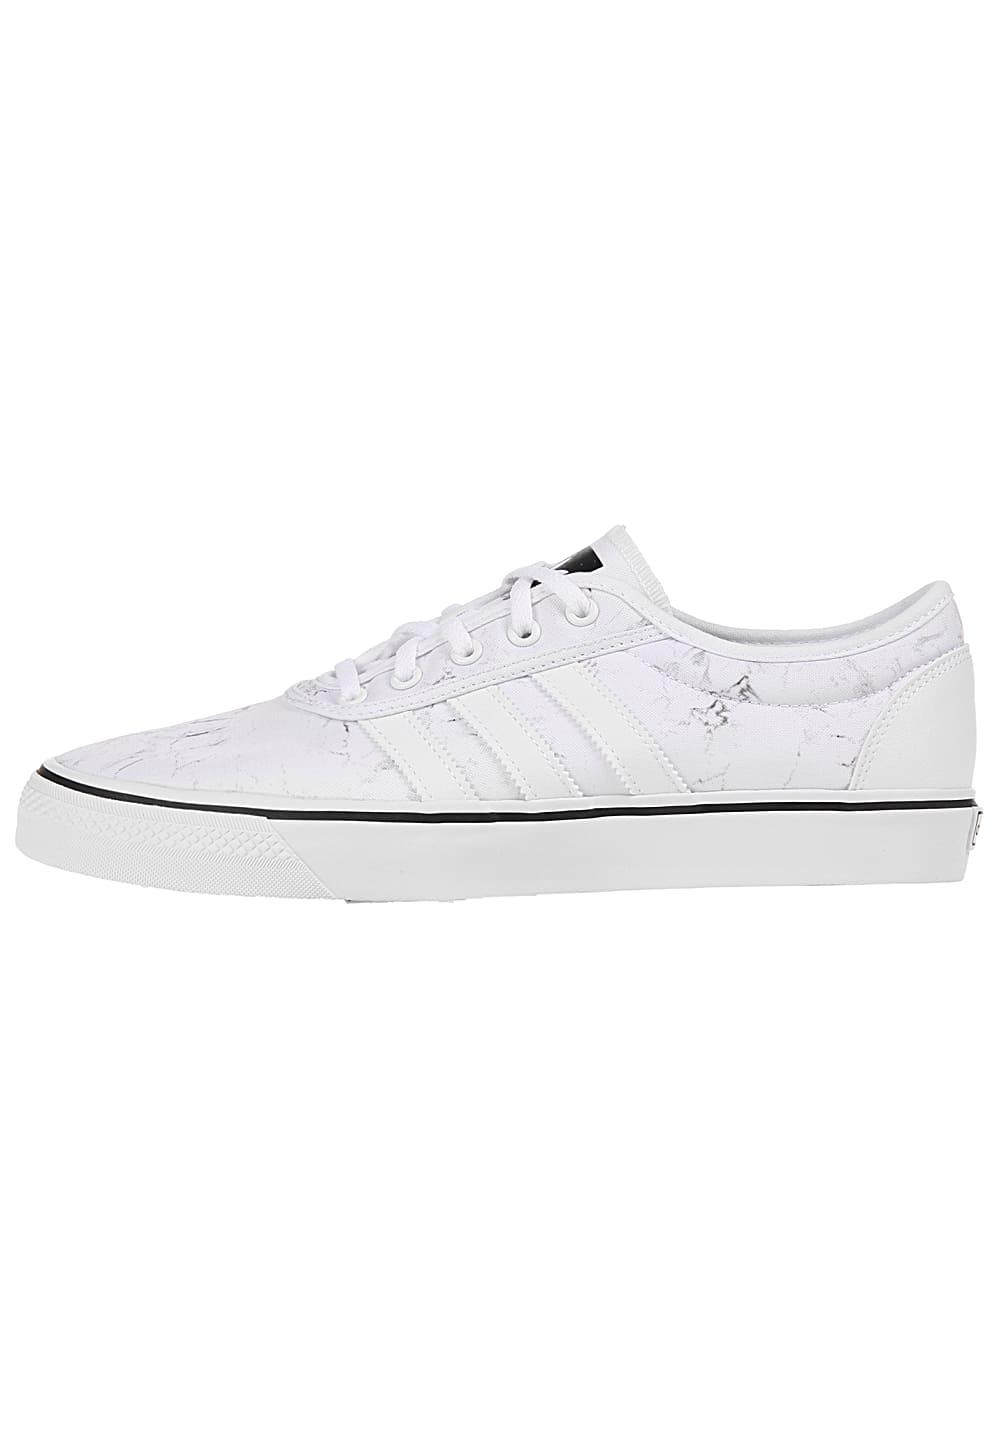 large discount buy good unique design Adidas Skateboarding Adi-Ease - Sneaker für Herren - Weiß